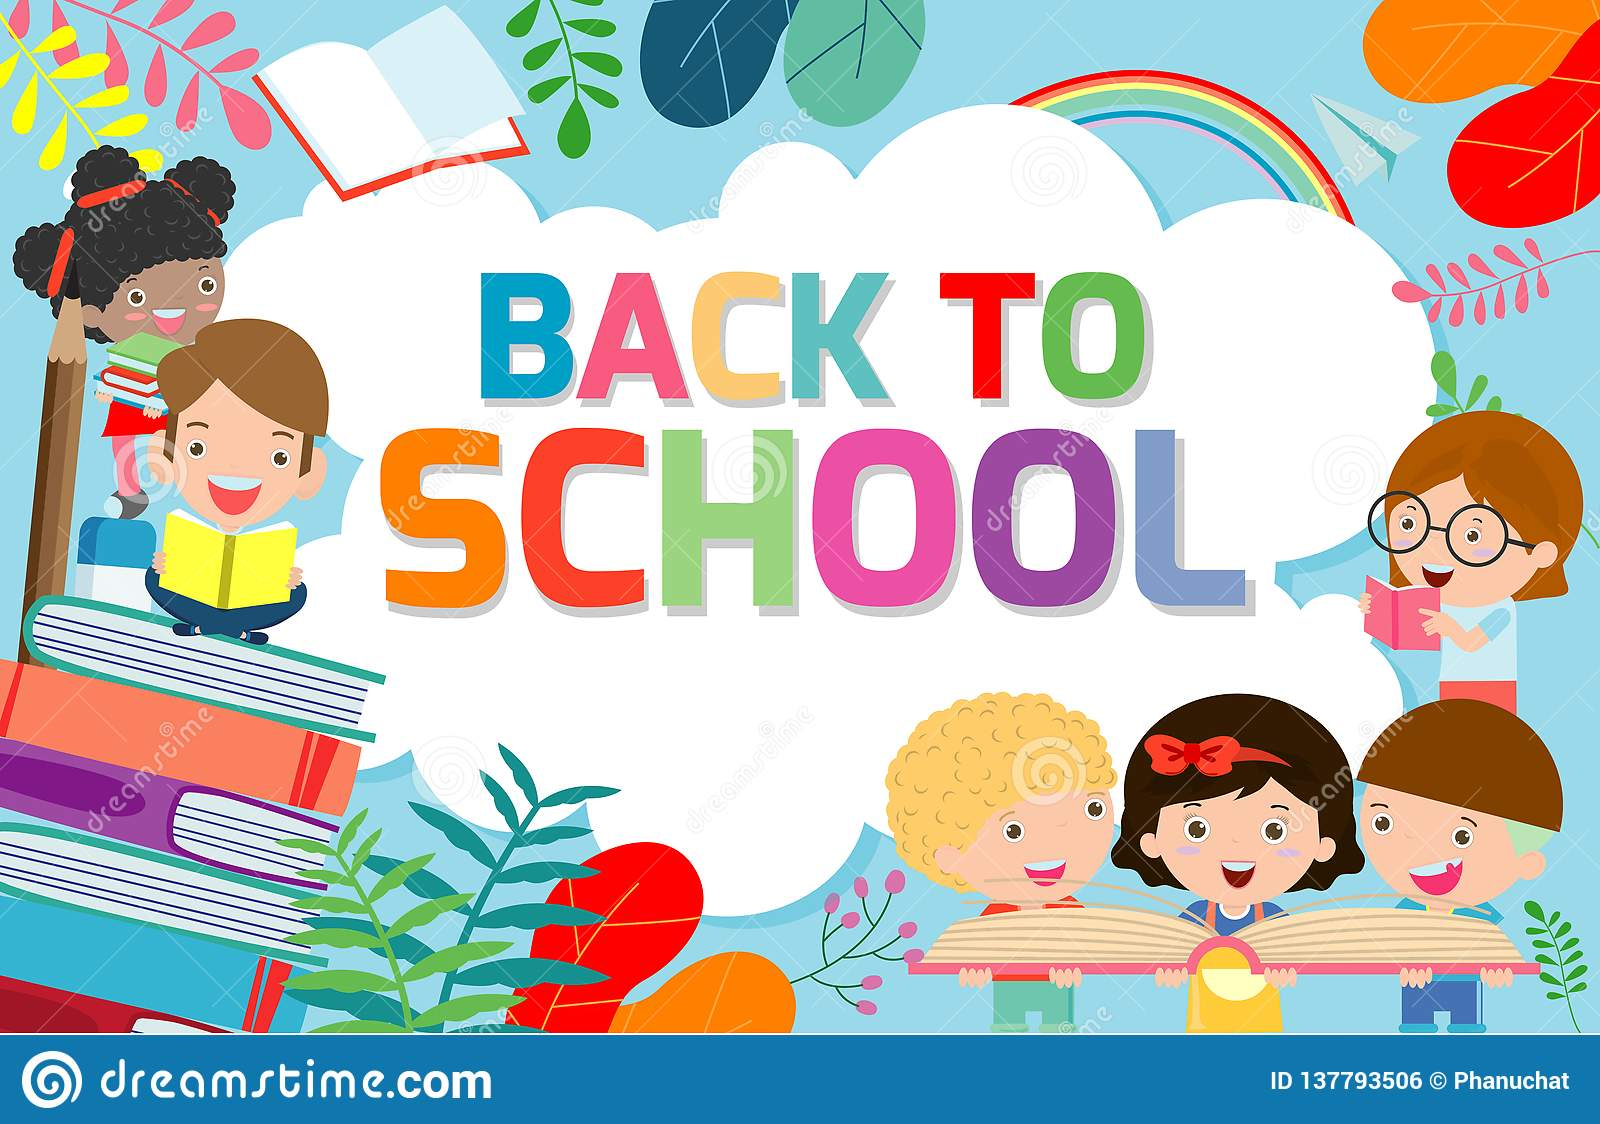 Back To School Banner Background Welcome Back To School Children Reading Book Cute School Kids Education Concept Stock Vector Illustration Of Brochure Certificate 137793506